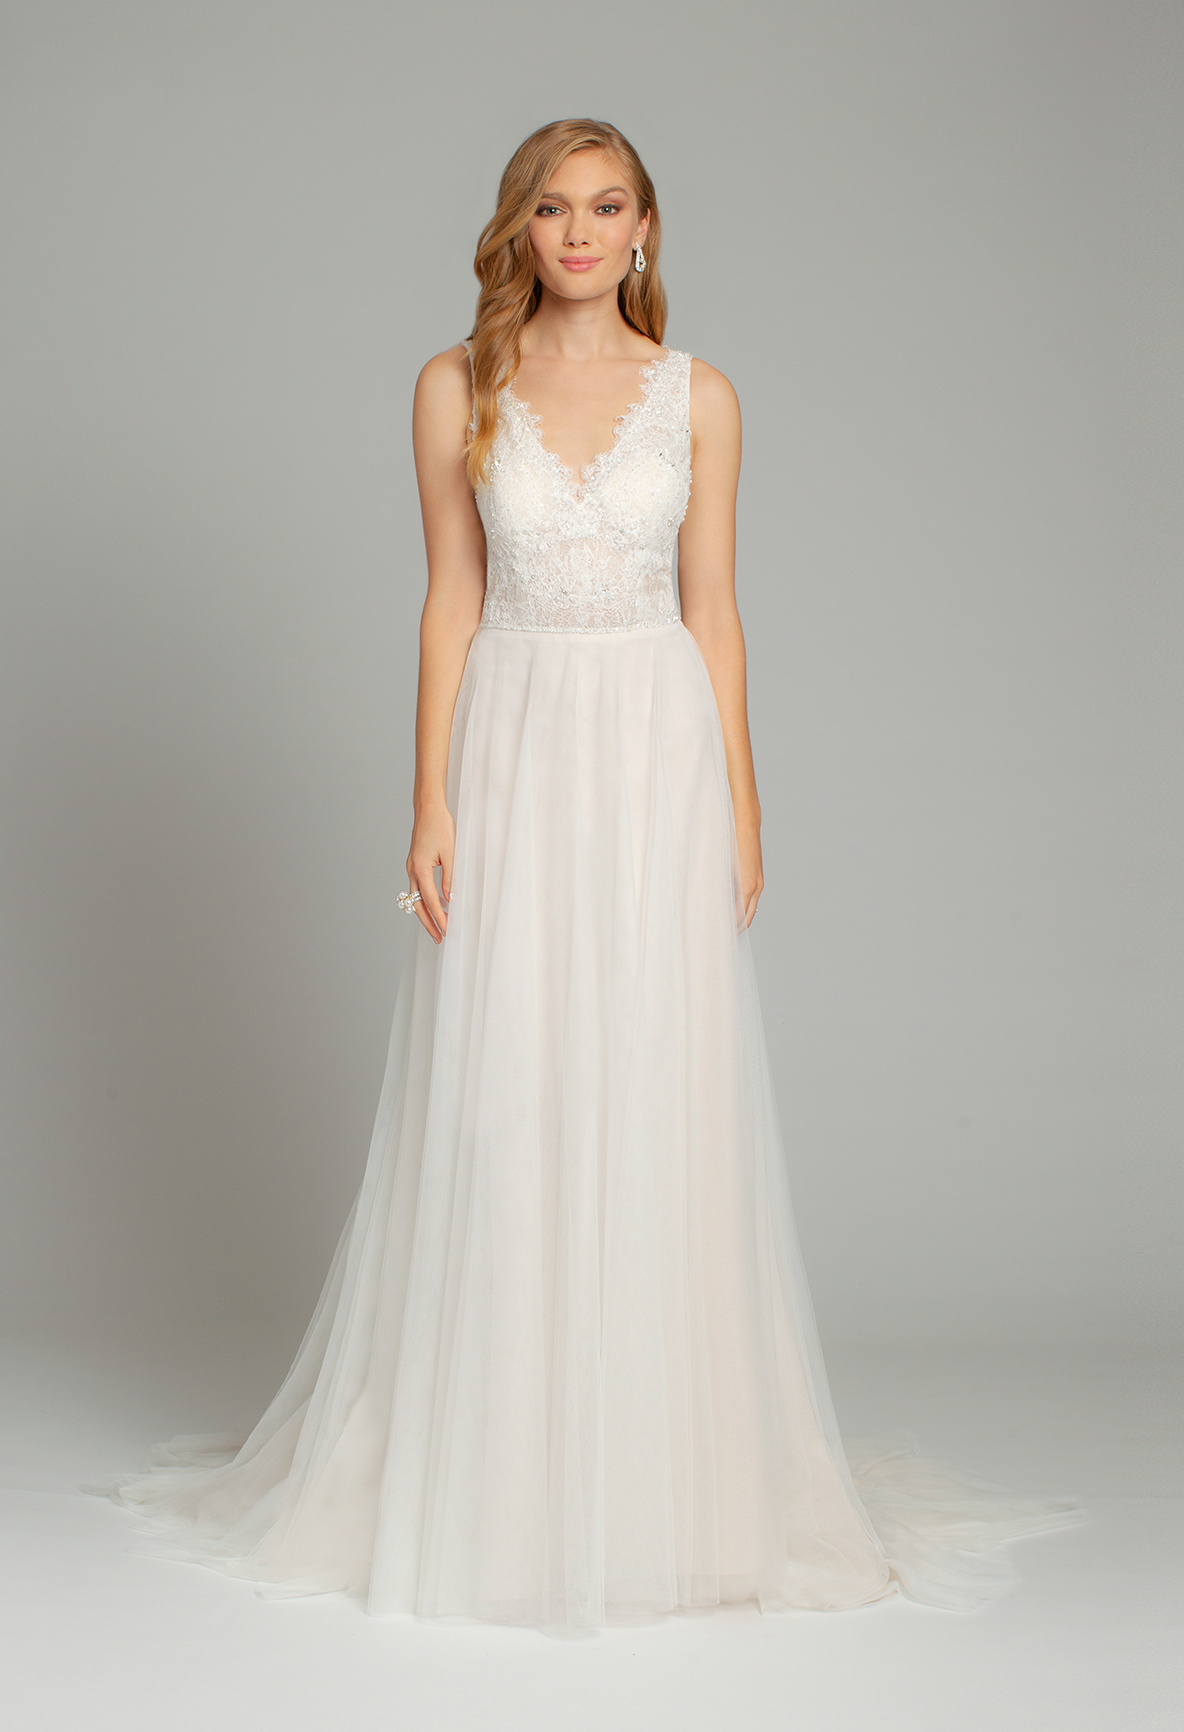 Wedding dress beaded back  Crystal Beaded Lace Plunge Tulle Dress  NEW ARRIVALS  Pinterest